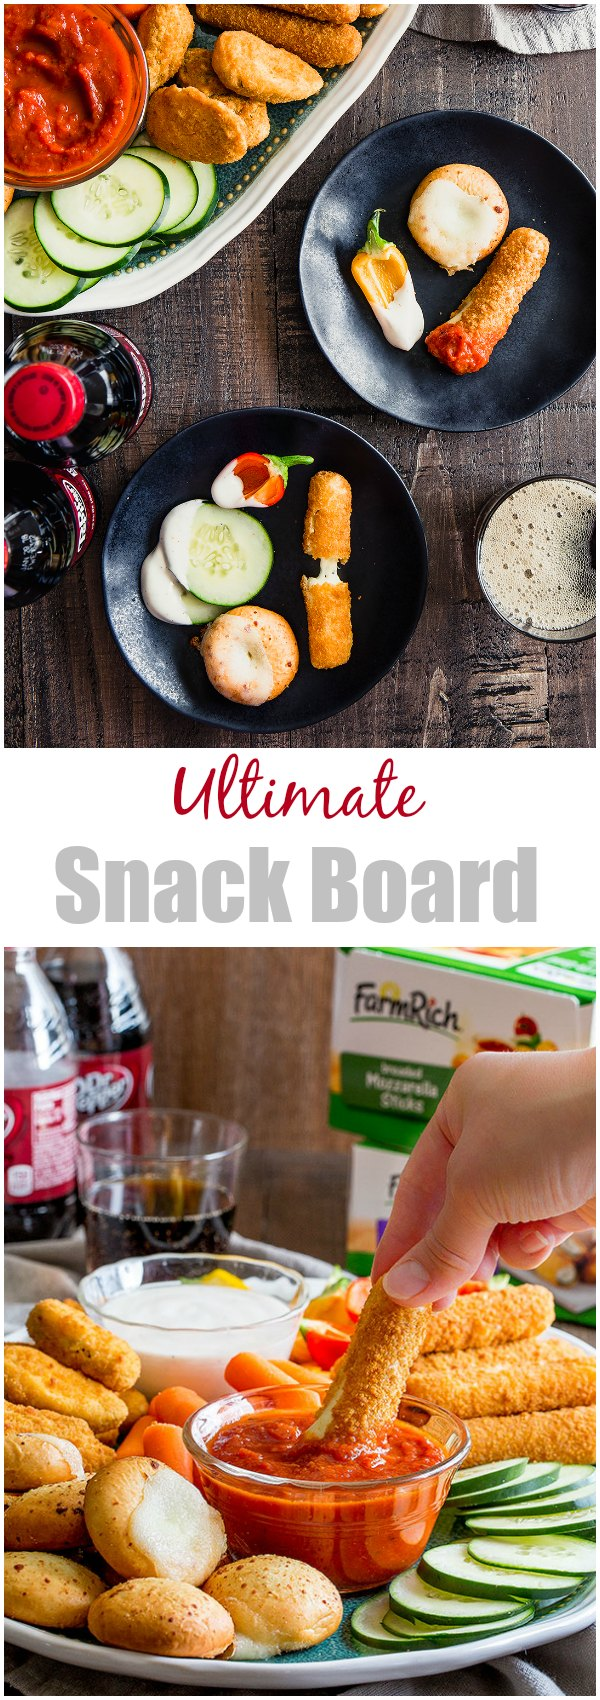 Ultimate snack board for game day, a beautiful balance of healthy and indulgent! #snackboard